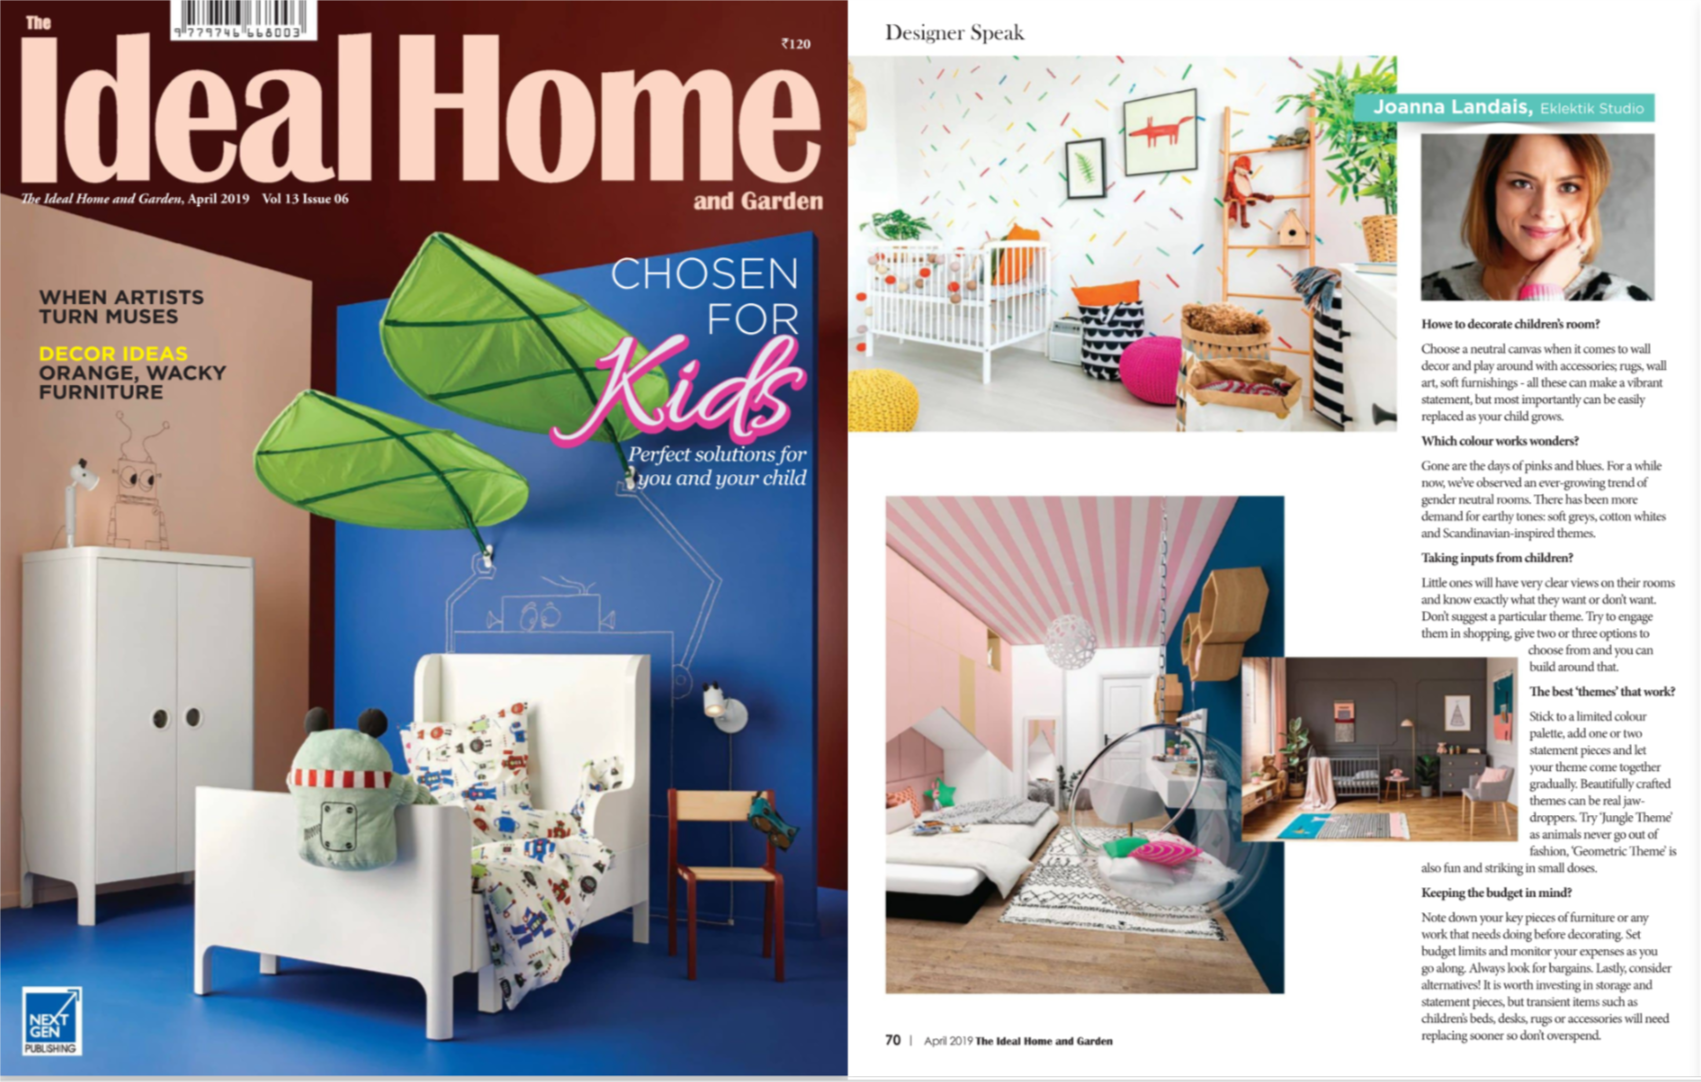 Designer Tips: Designing Child's Bedroom: Ideal Home April 2019